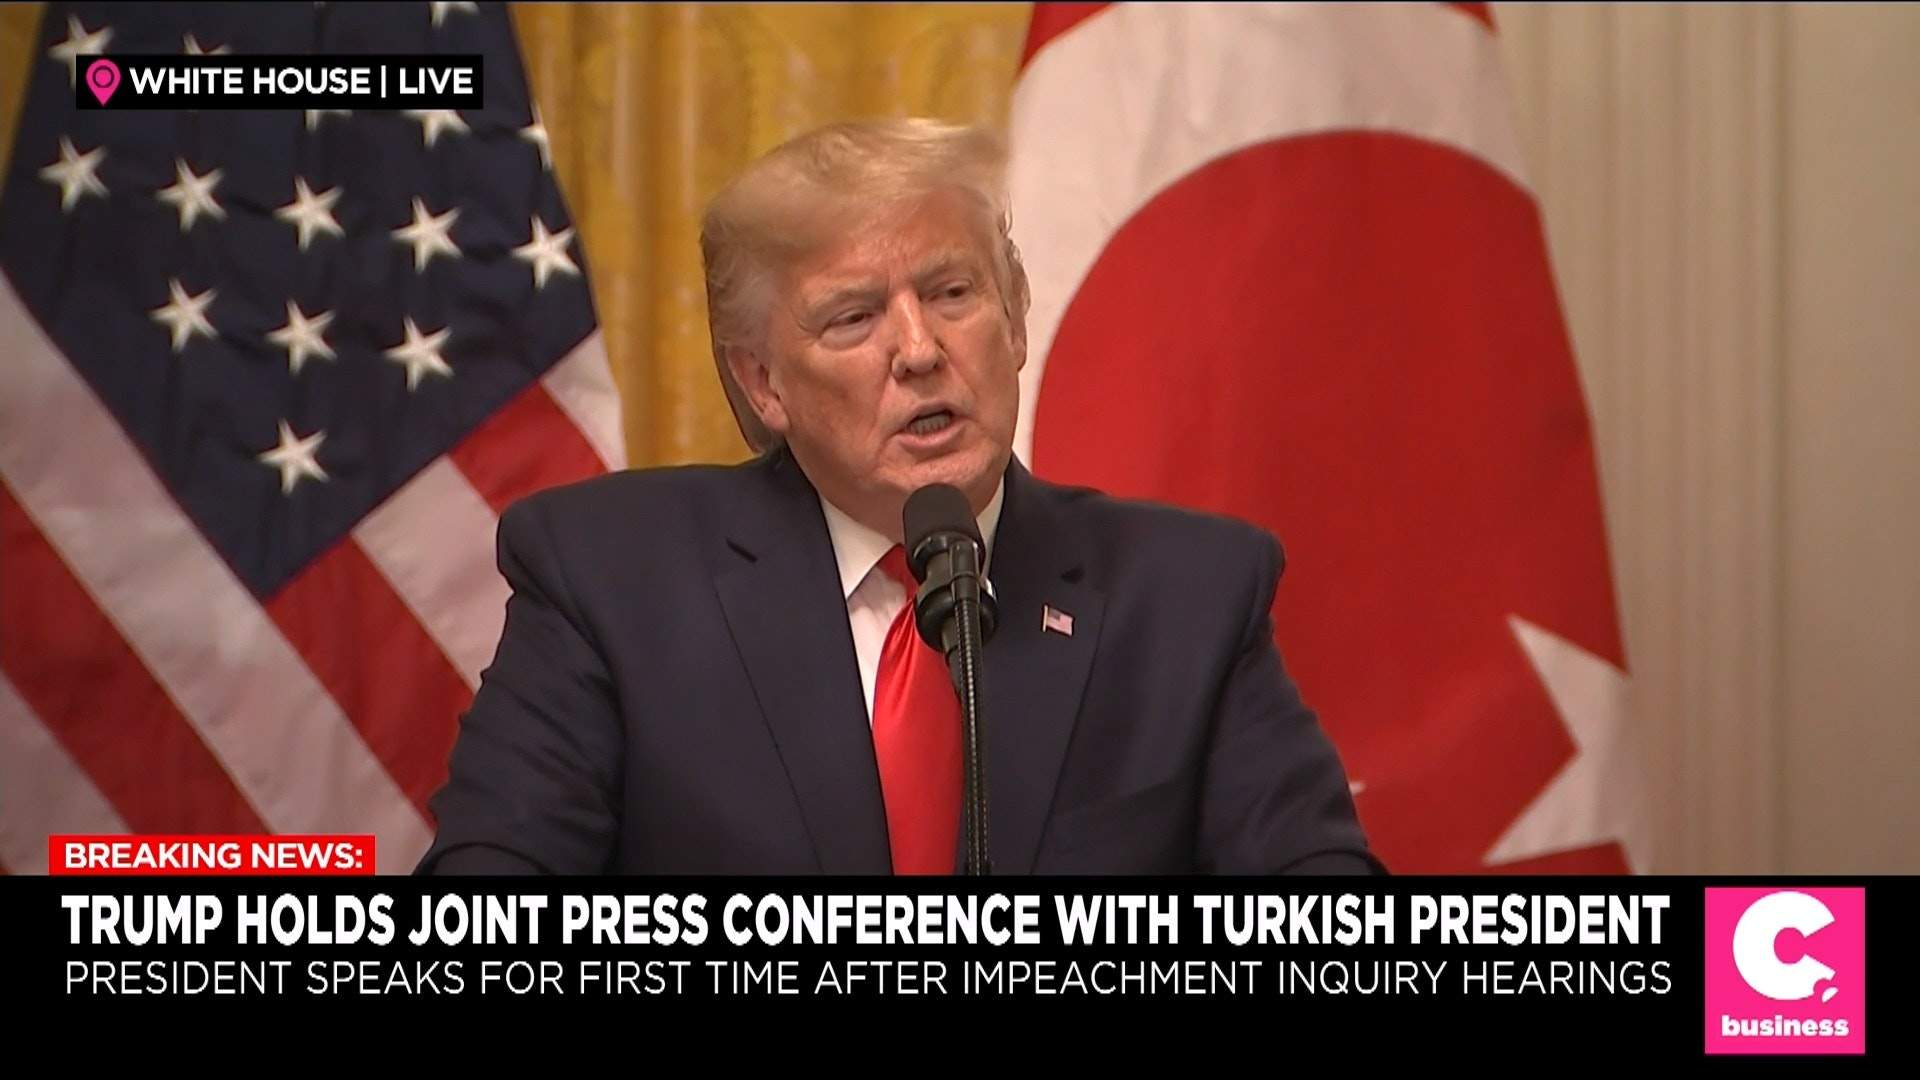 Trump Praises Turkey's President in White House Meeting Amid Strained Relations